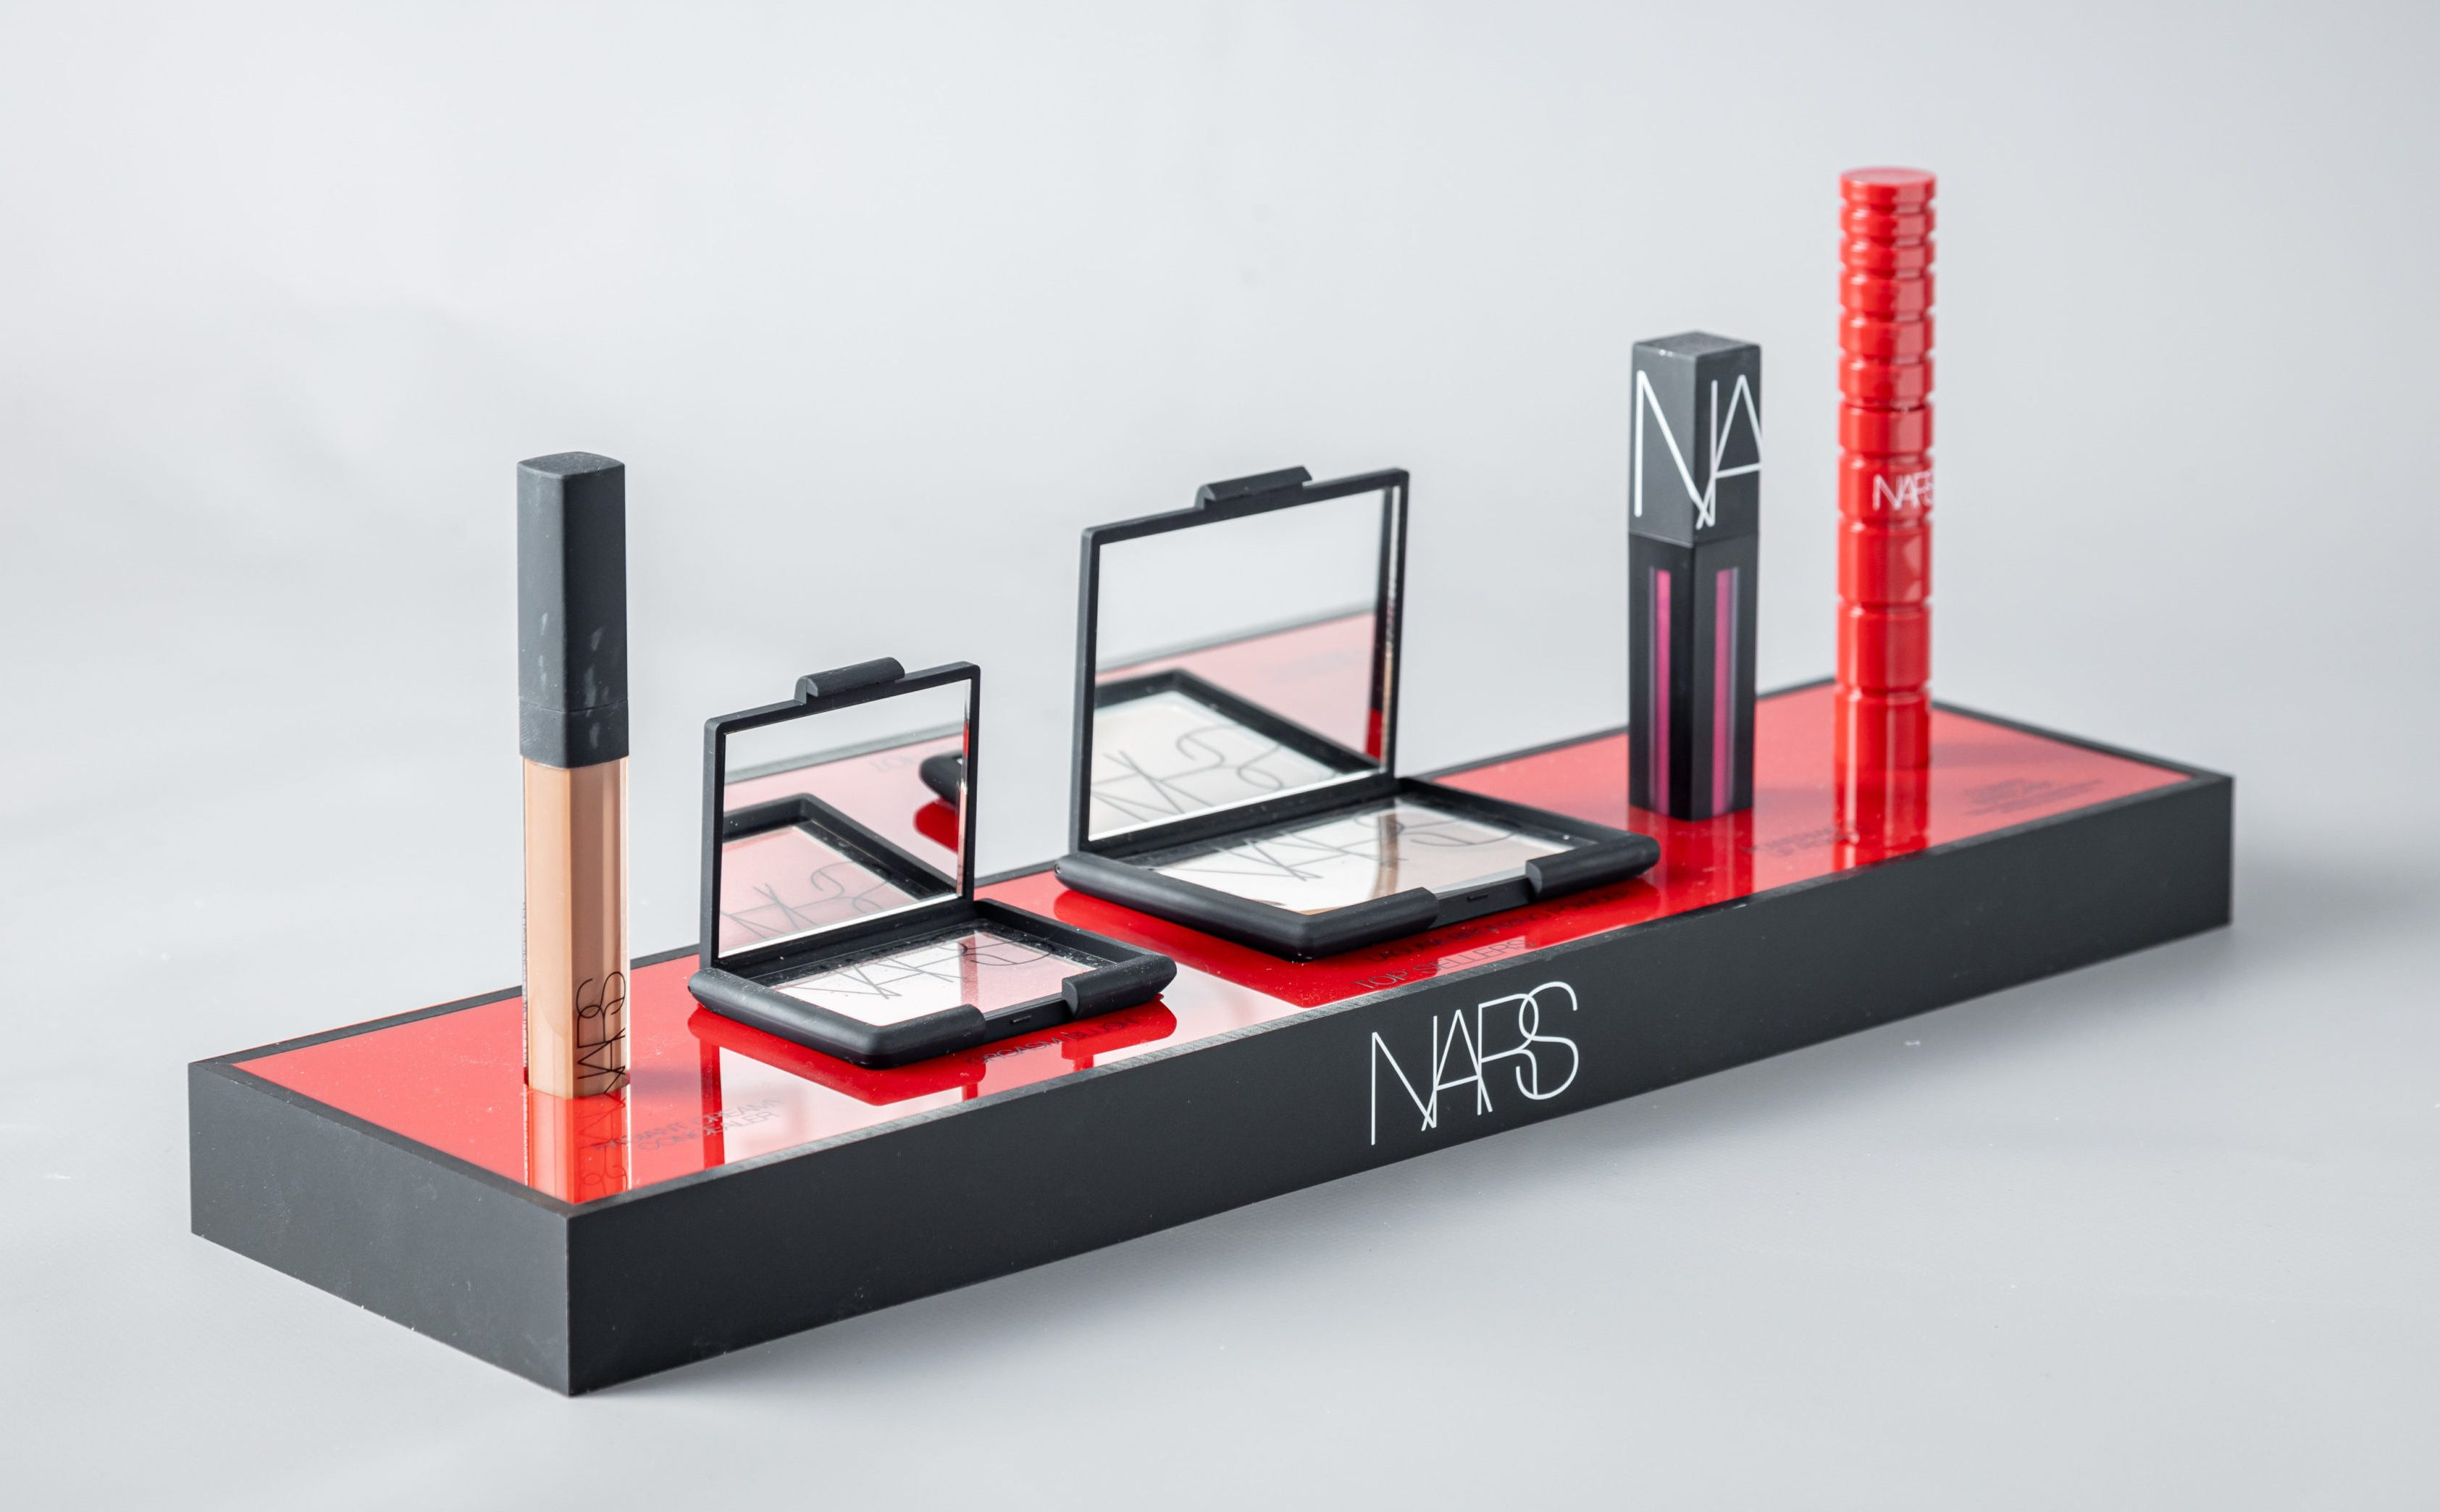 NARS makeup display